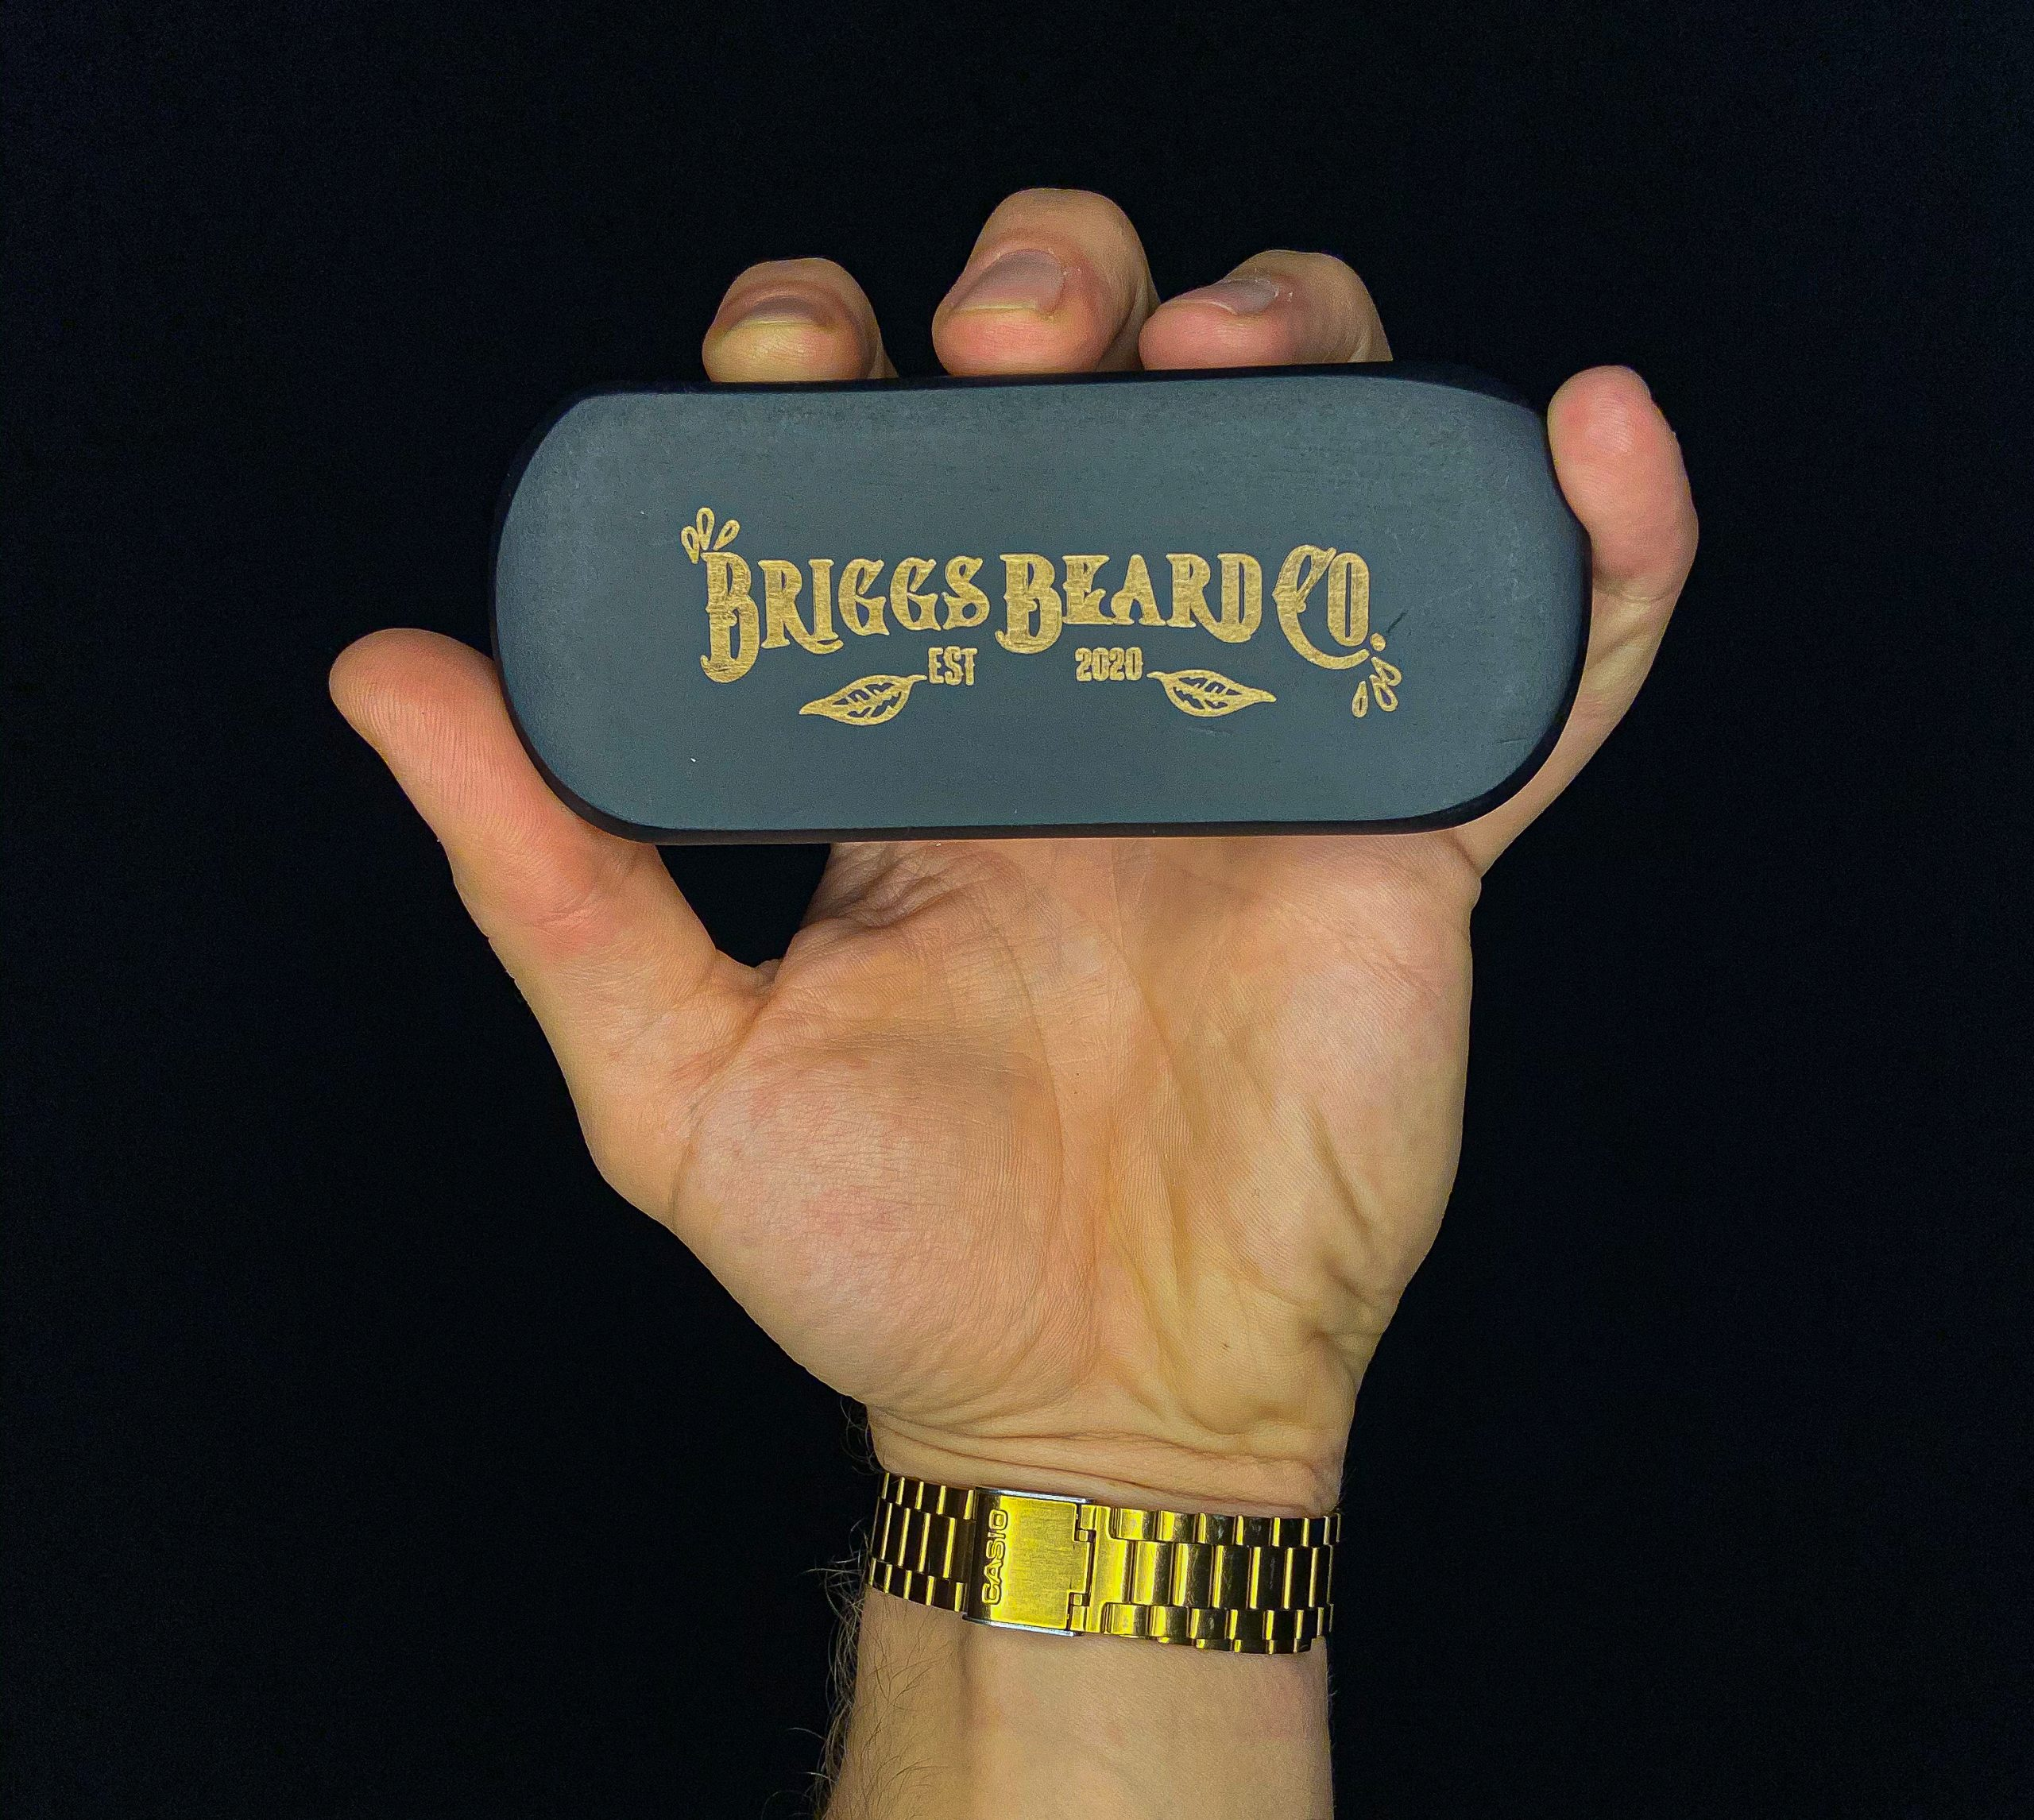 A hand holding the Briggs Beard Co beard brush